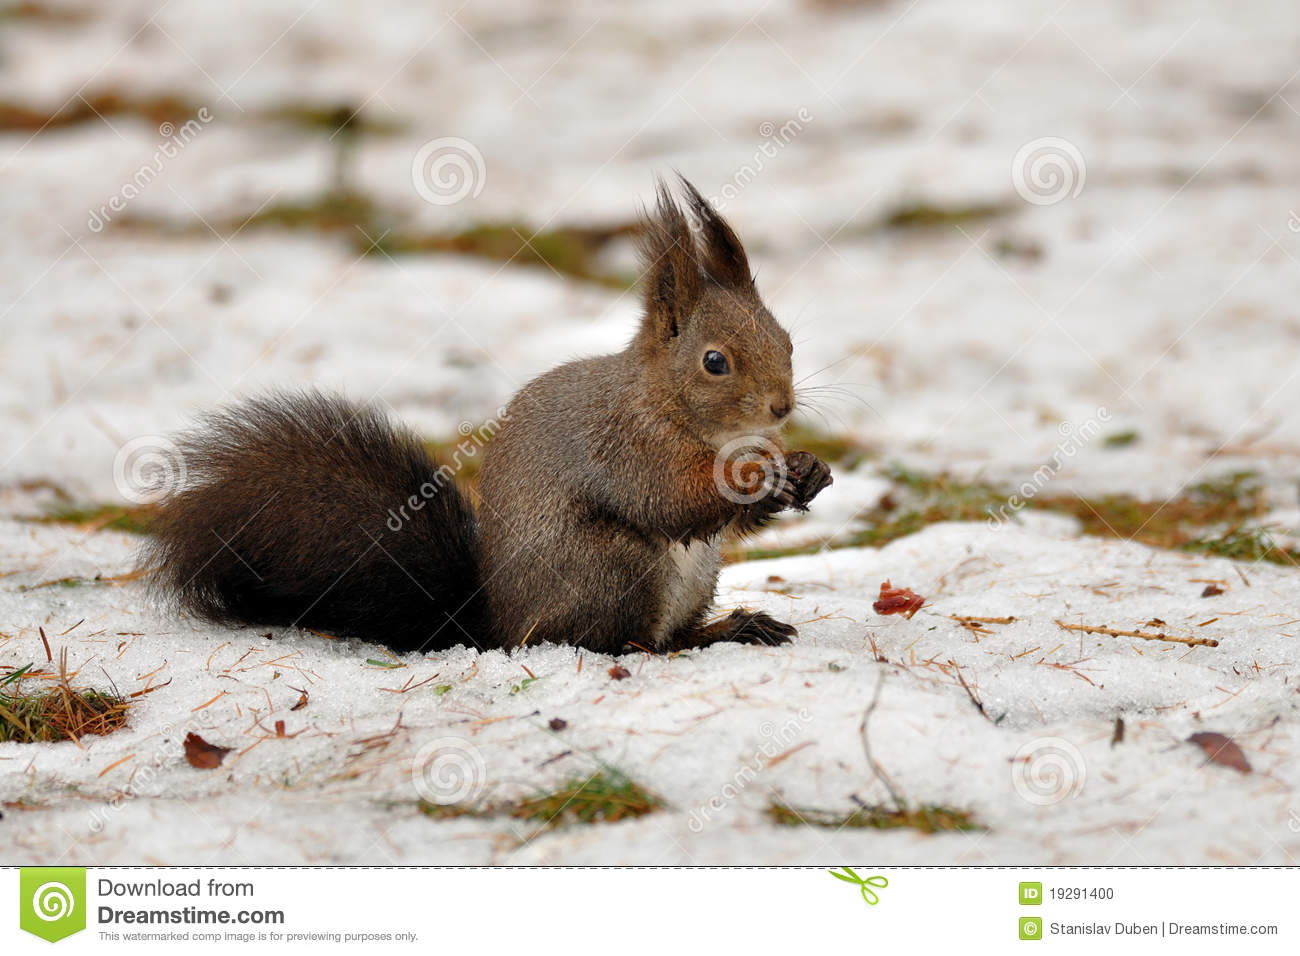 Brown squirrel in winter